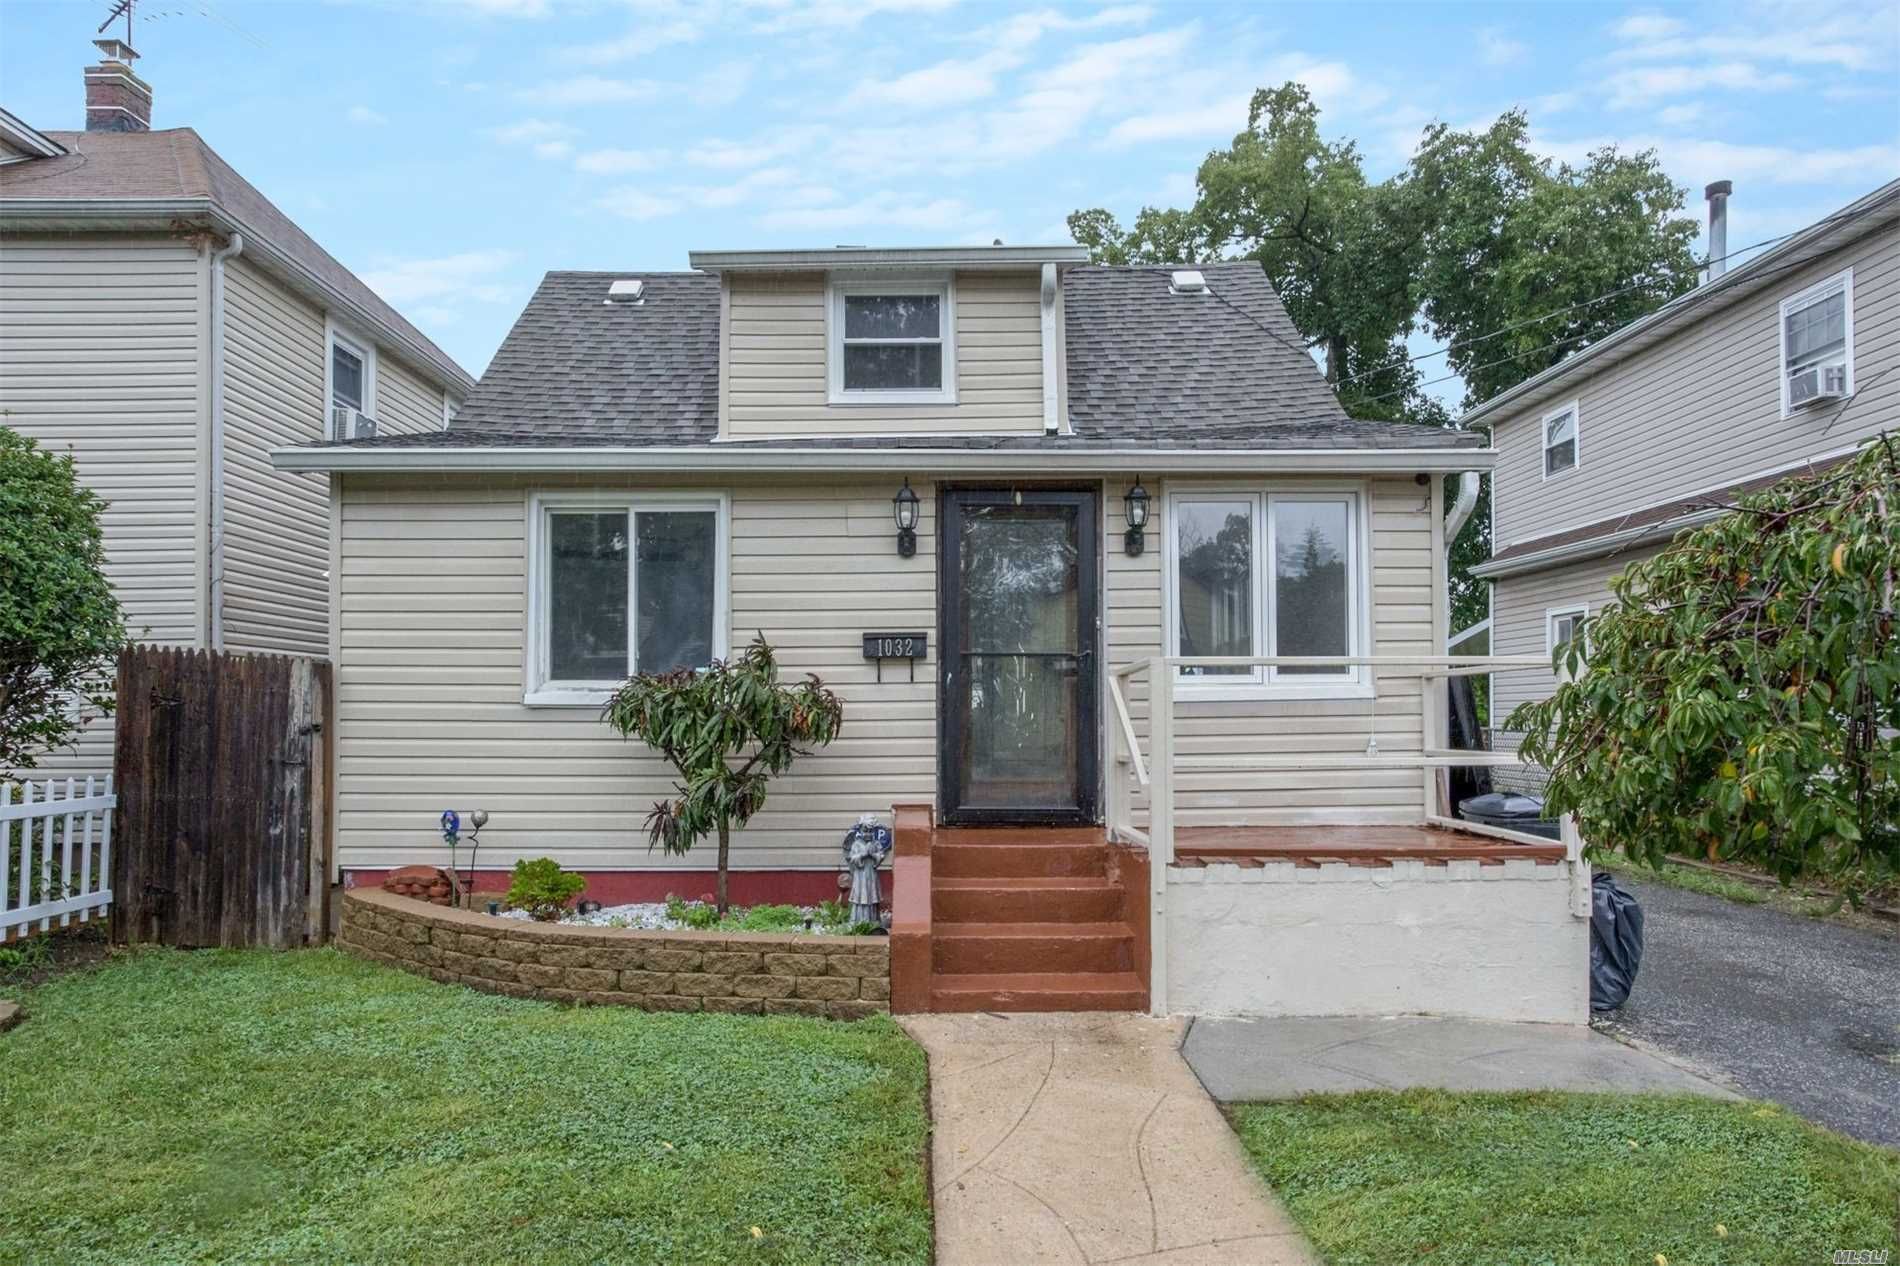 Uniondale Cape Home With 4 Bedrooms, 1 Full Bath, Eat In Kitchen, Living Room Dining Room Combo With Hard Wood Floors. Finished Basement With Side Entrance. Private Driveway.